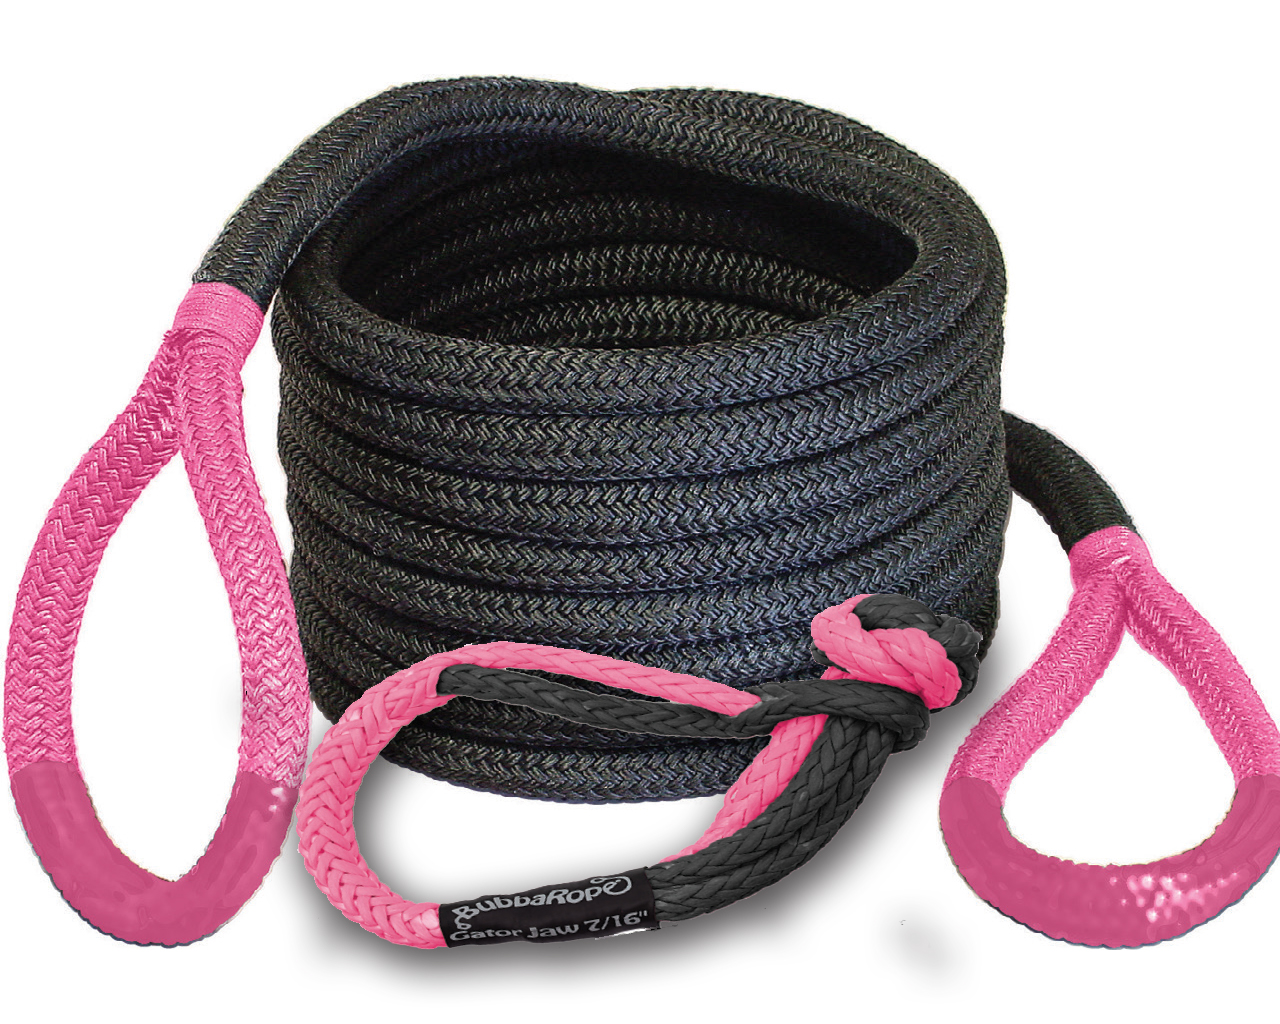 176655PKG Bubba Rope Recovery Strap 3/4 Inch Round X 20 Foot Long